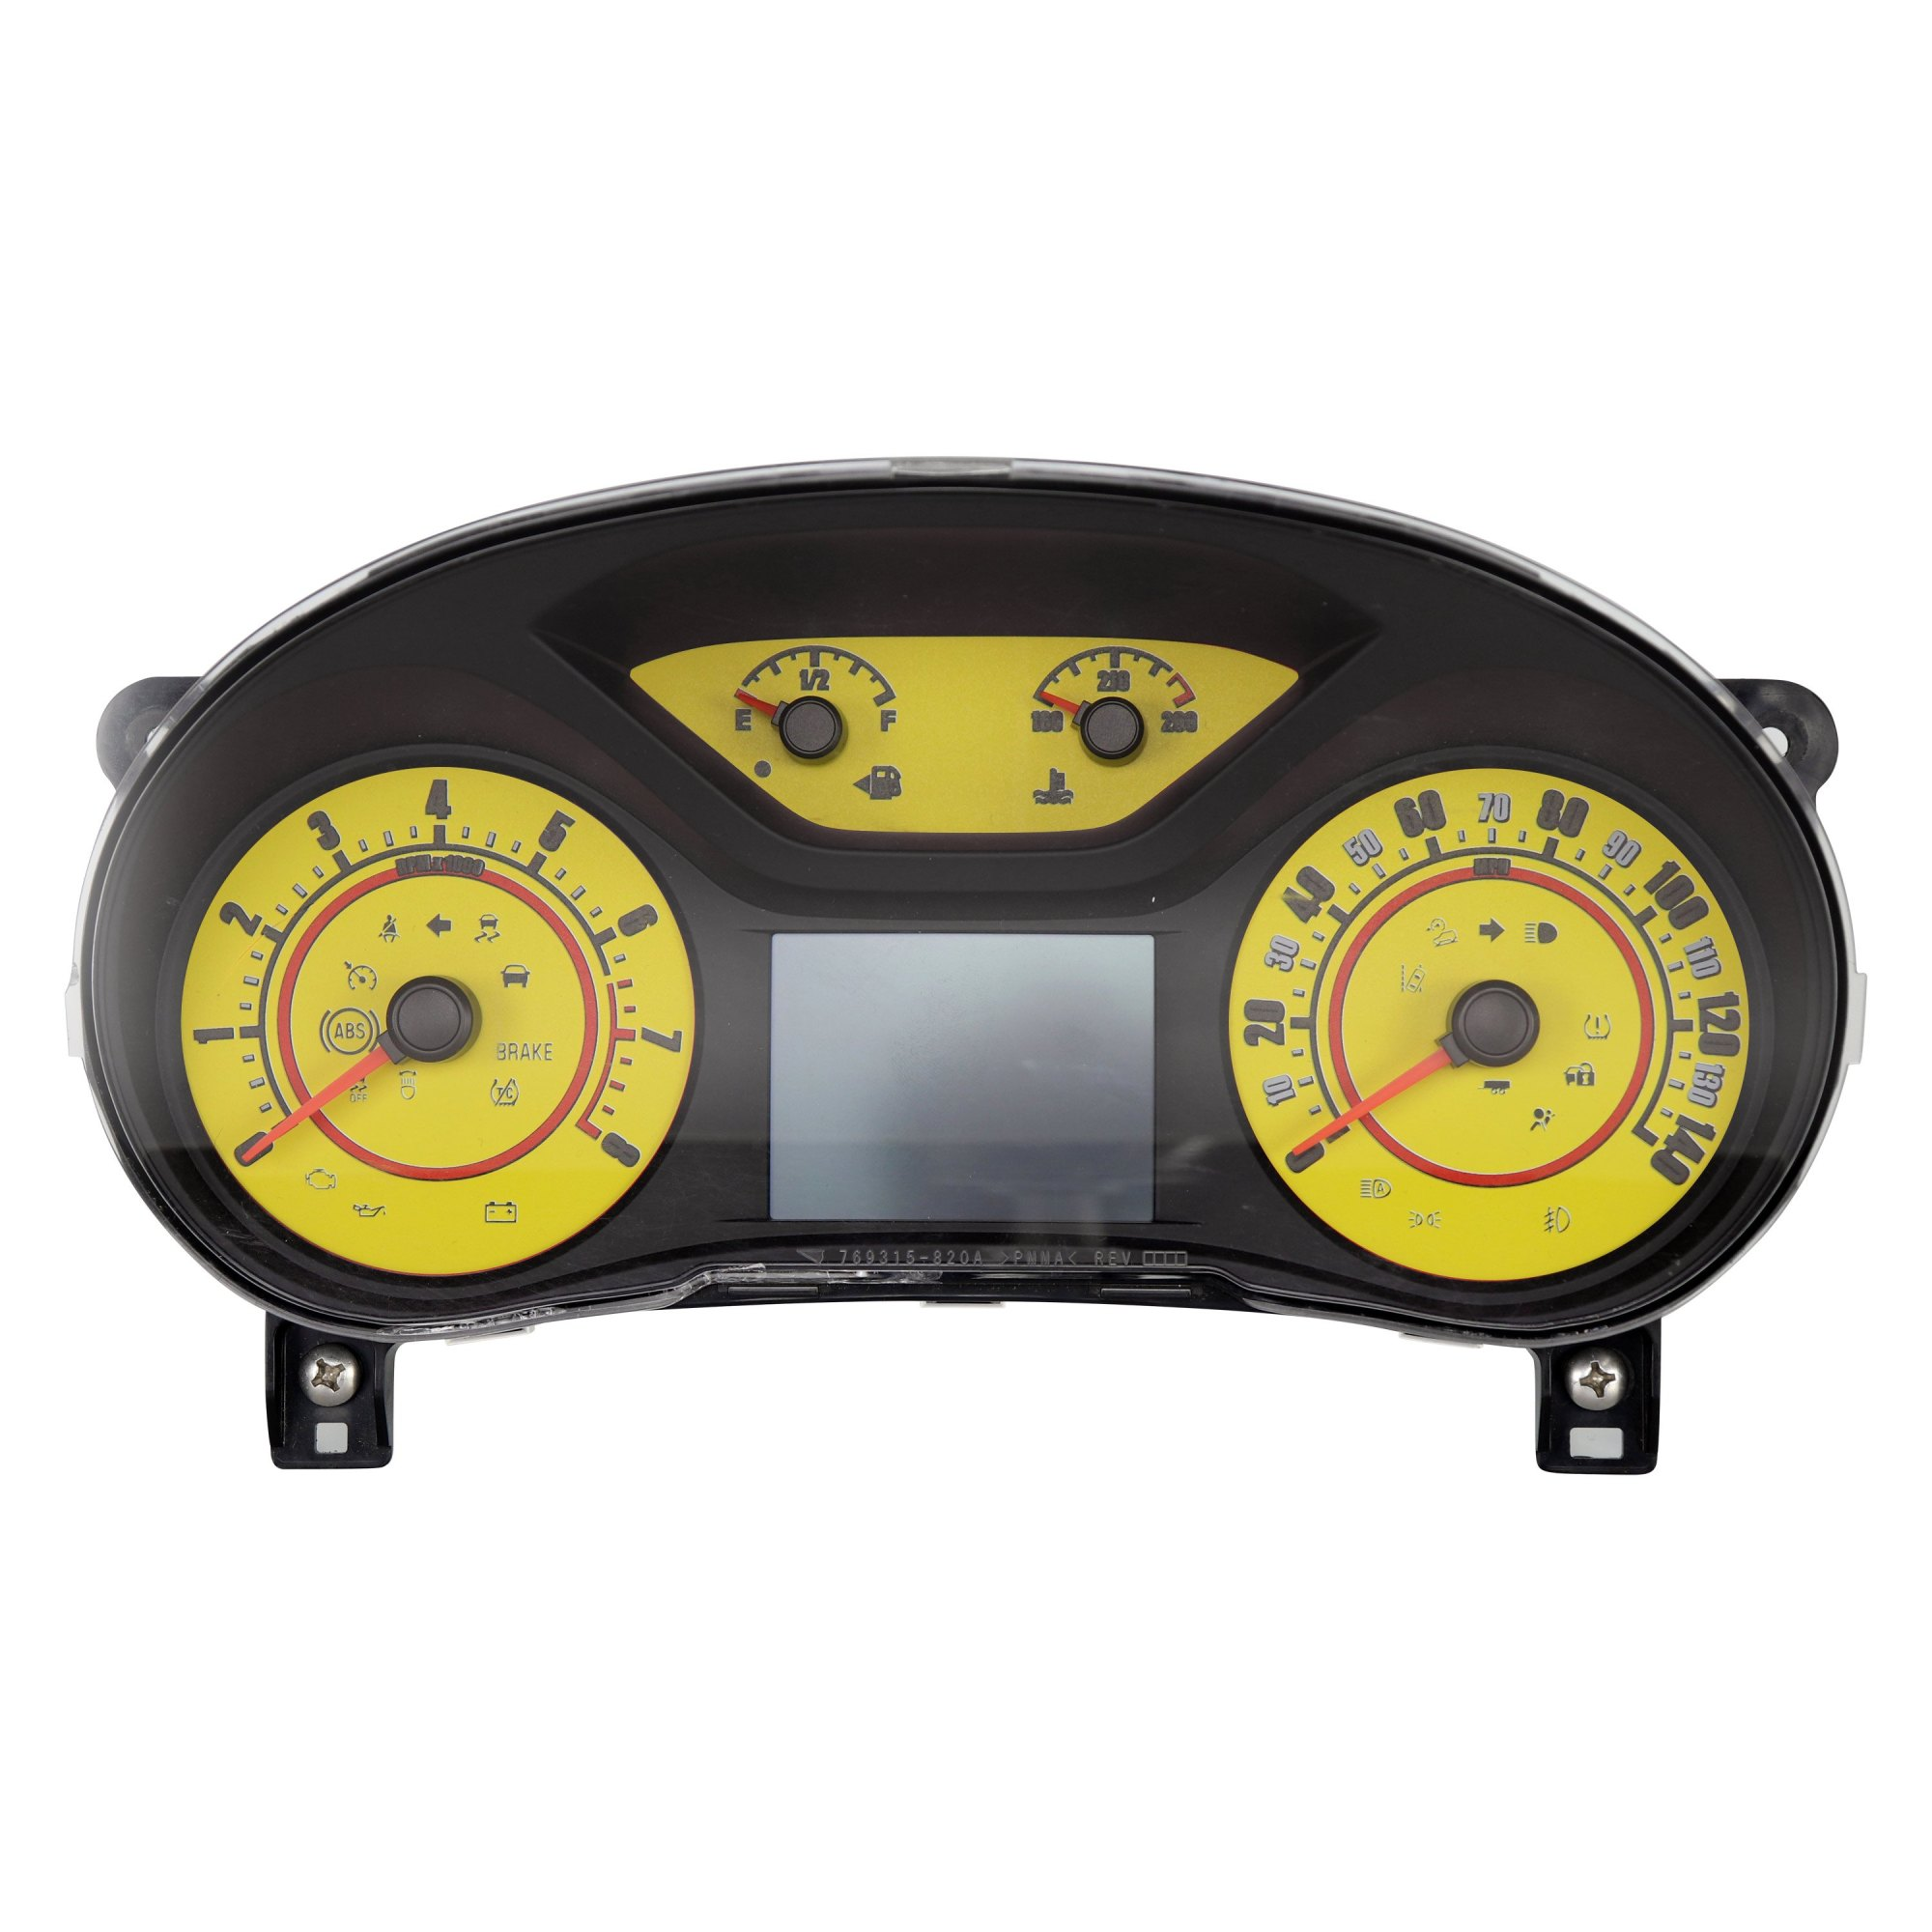 hight resolution of  speedo daytona edition gauge face kit with white night lettering color red 140 mph 8000 rpmus speedo daytona edition colors